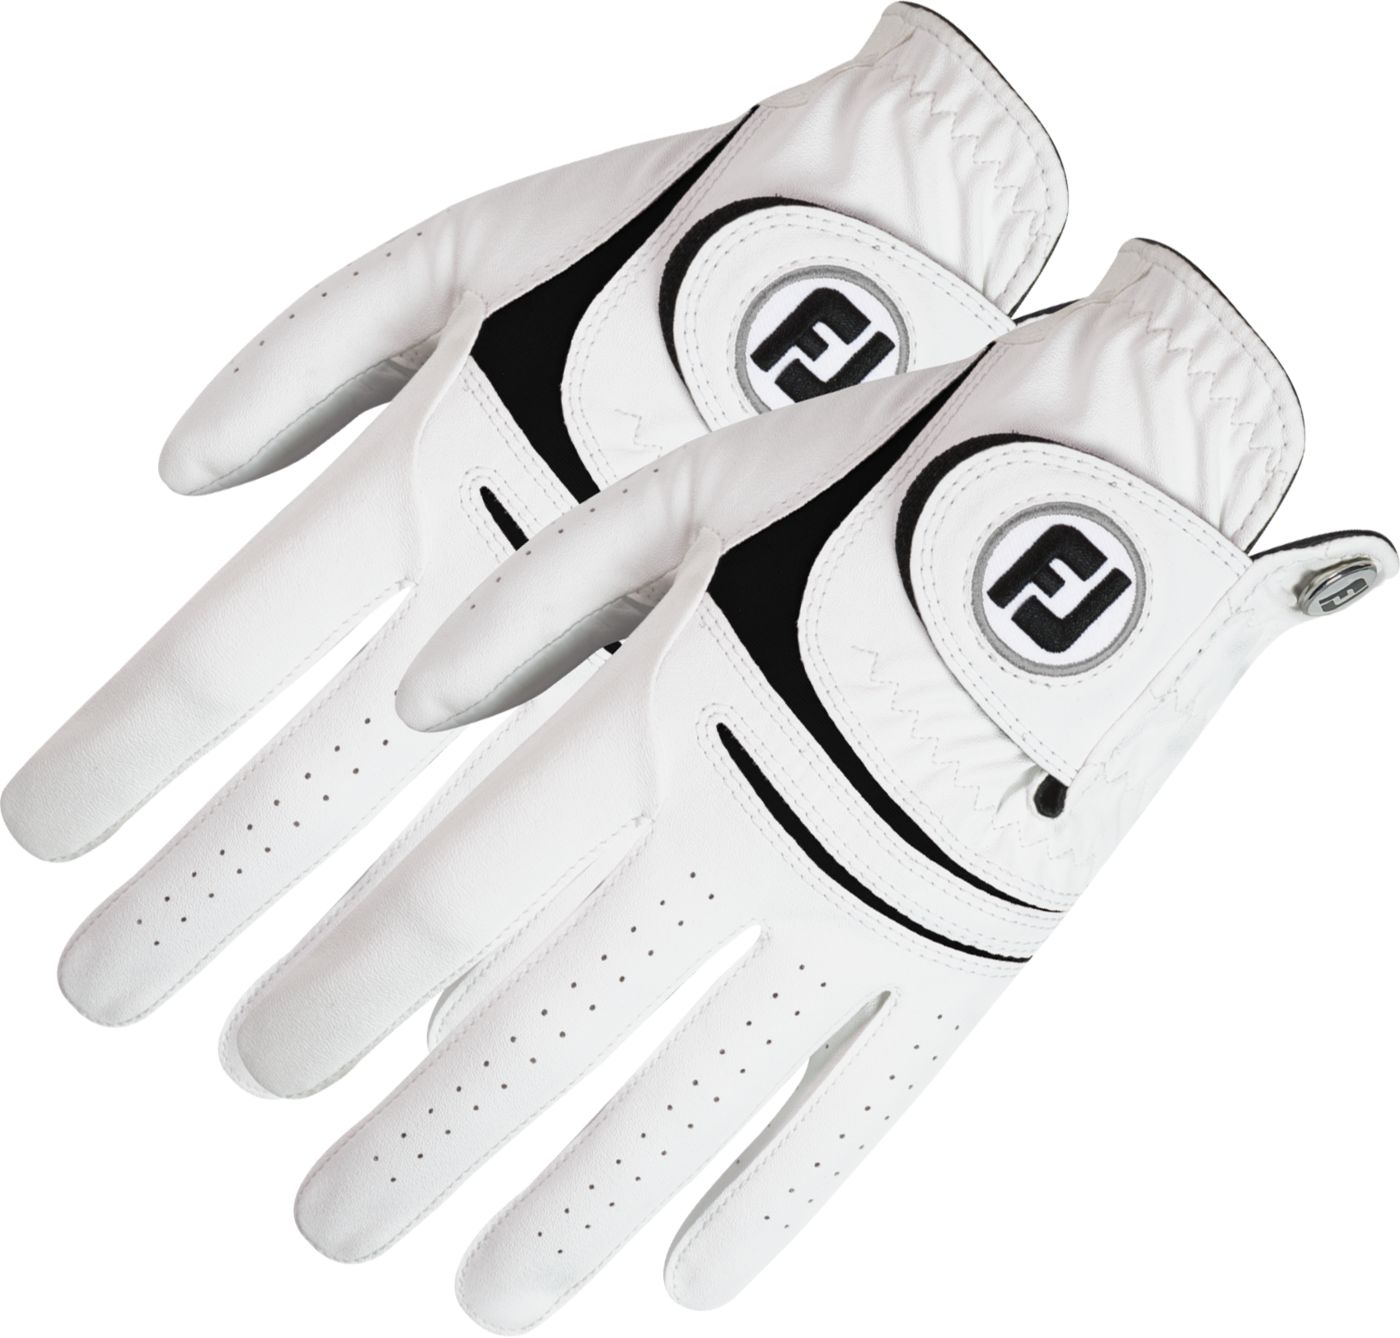 FootJoy Women's WeatherSof Golf Glove - 2 Pack - Prior Generation